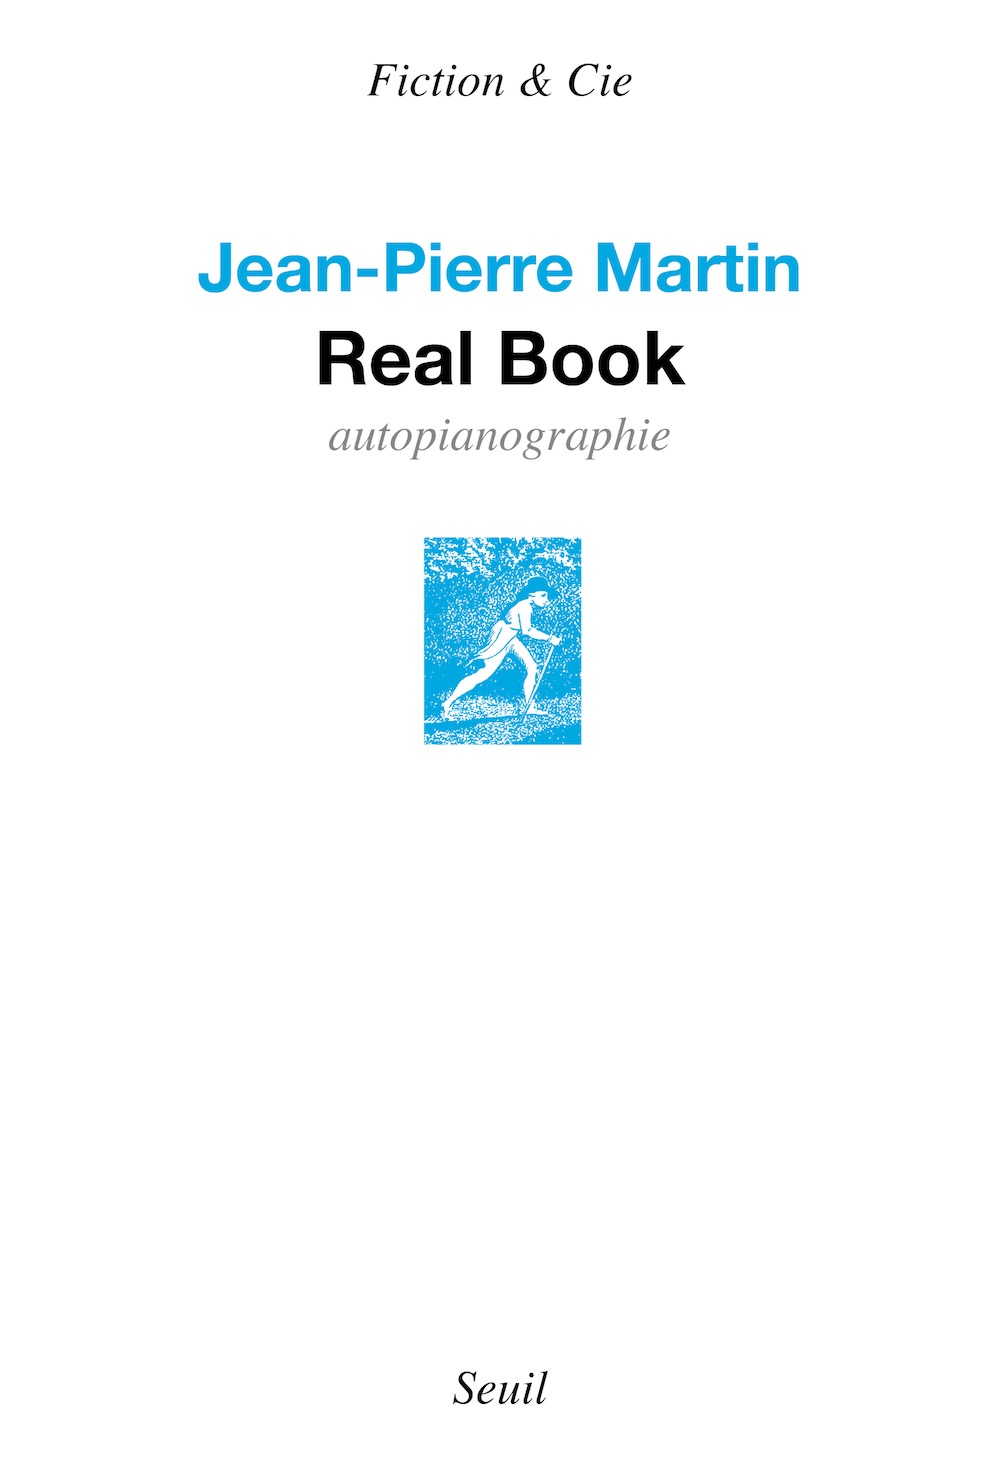 Couv plat 1 Real Book-2